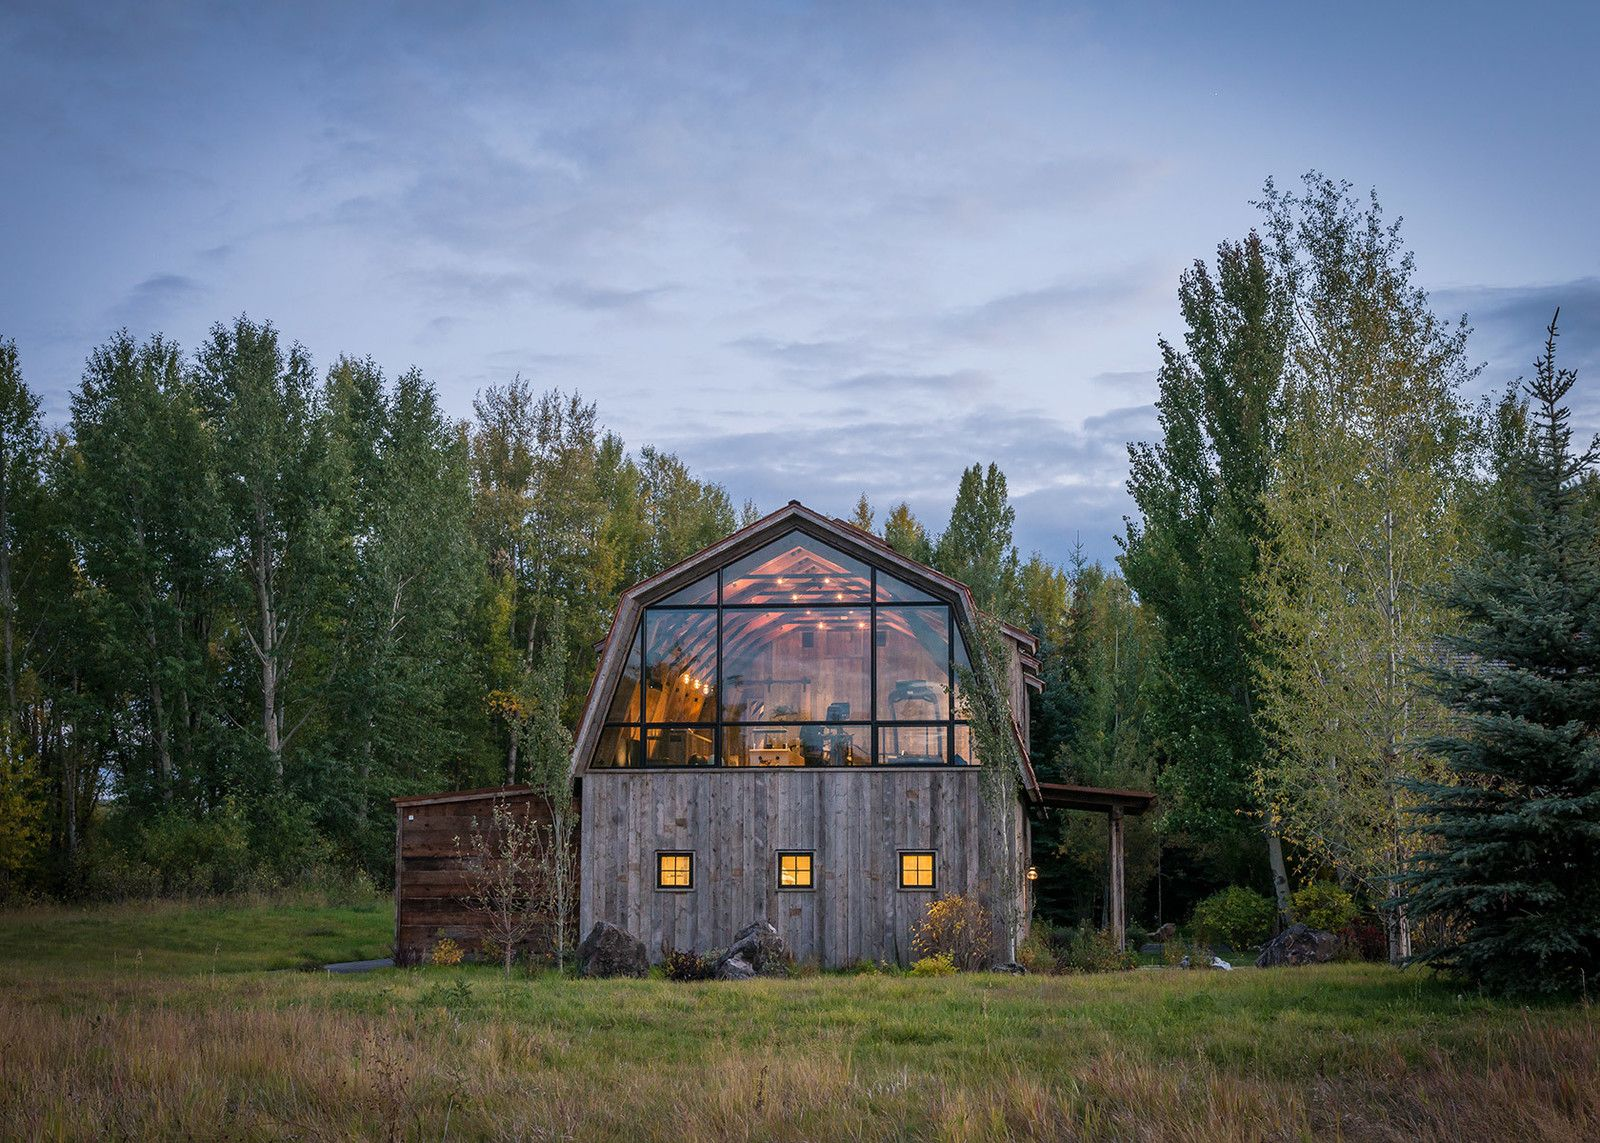 This modern take on the rustic barn offers a unique space for guests to soak in the gorgeous mountain vistas near Jackson, Wyoming.